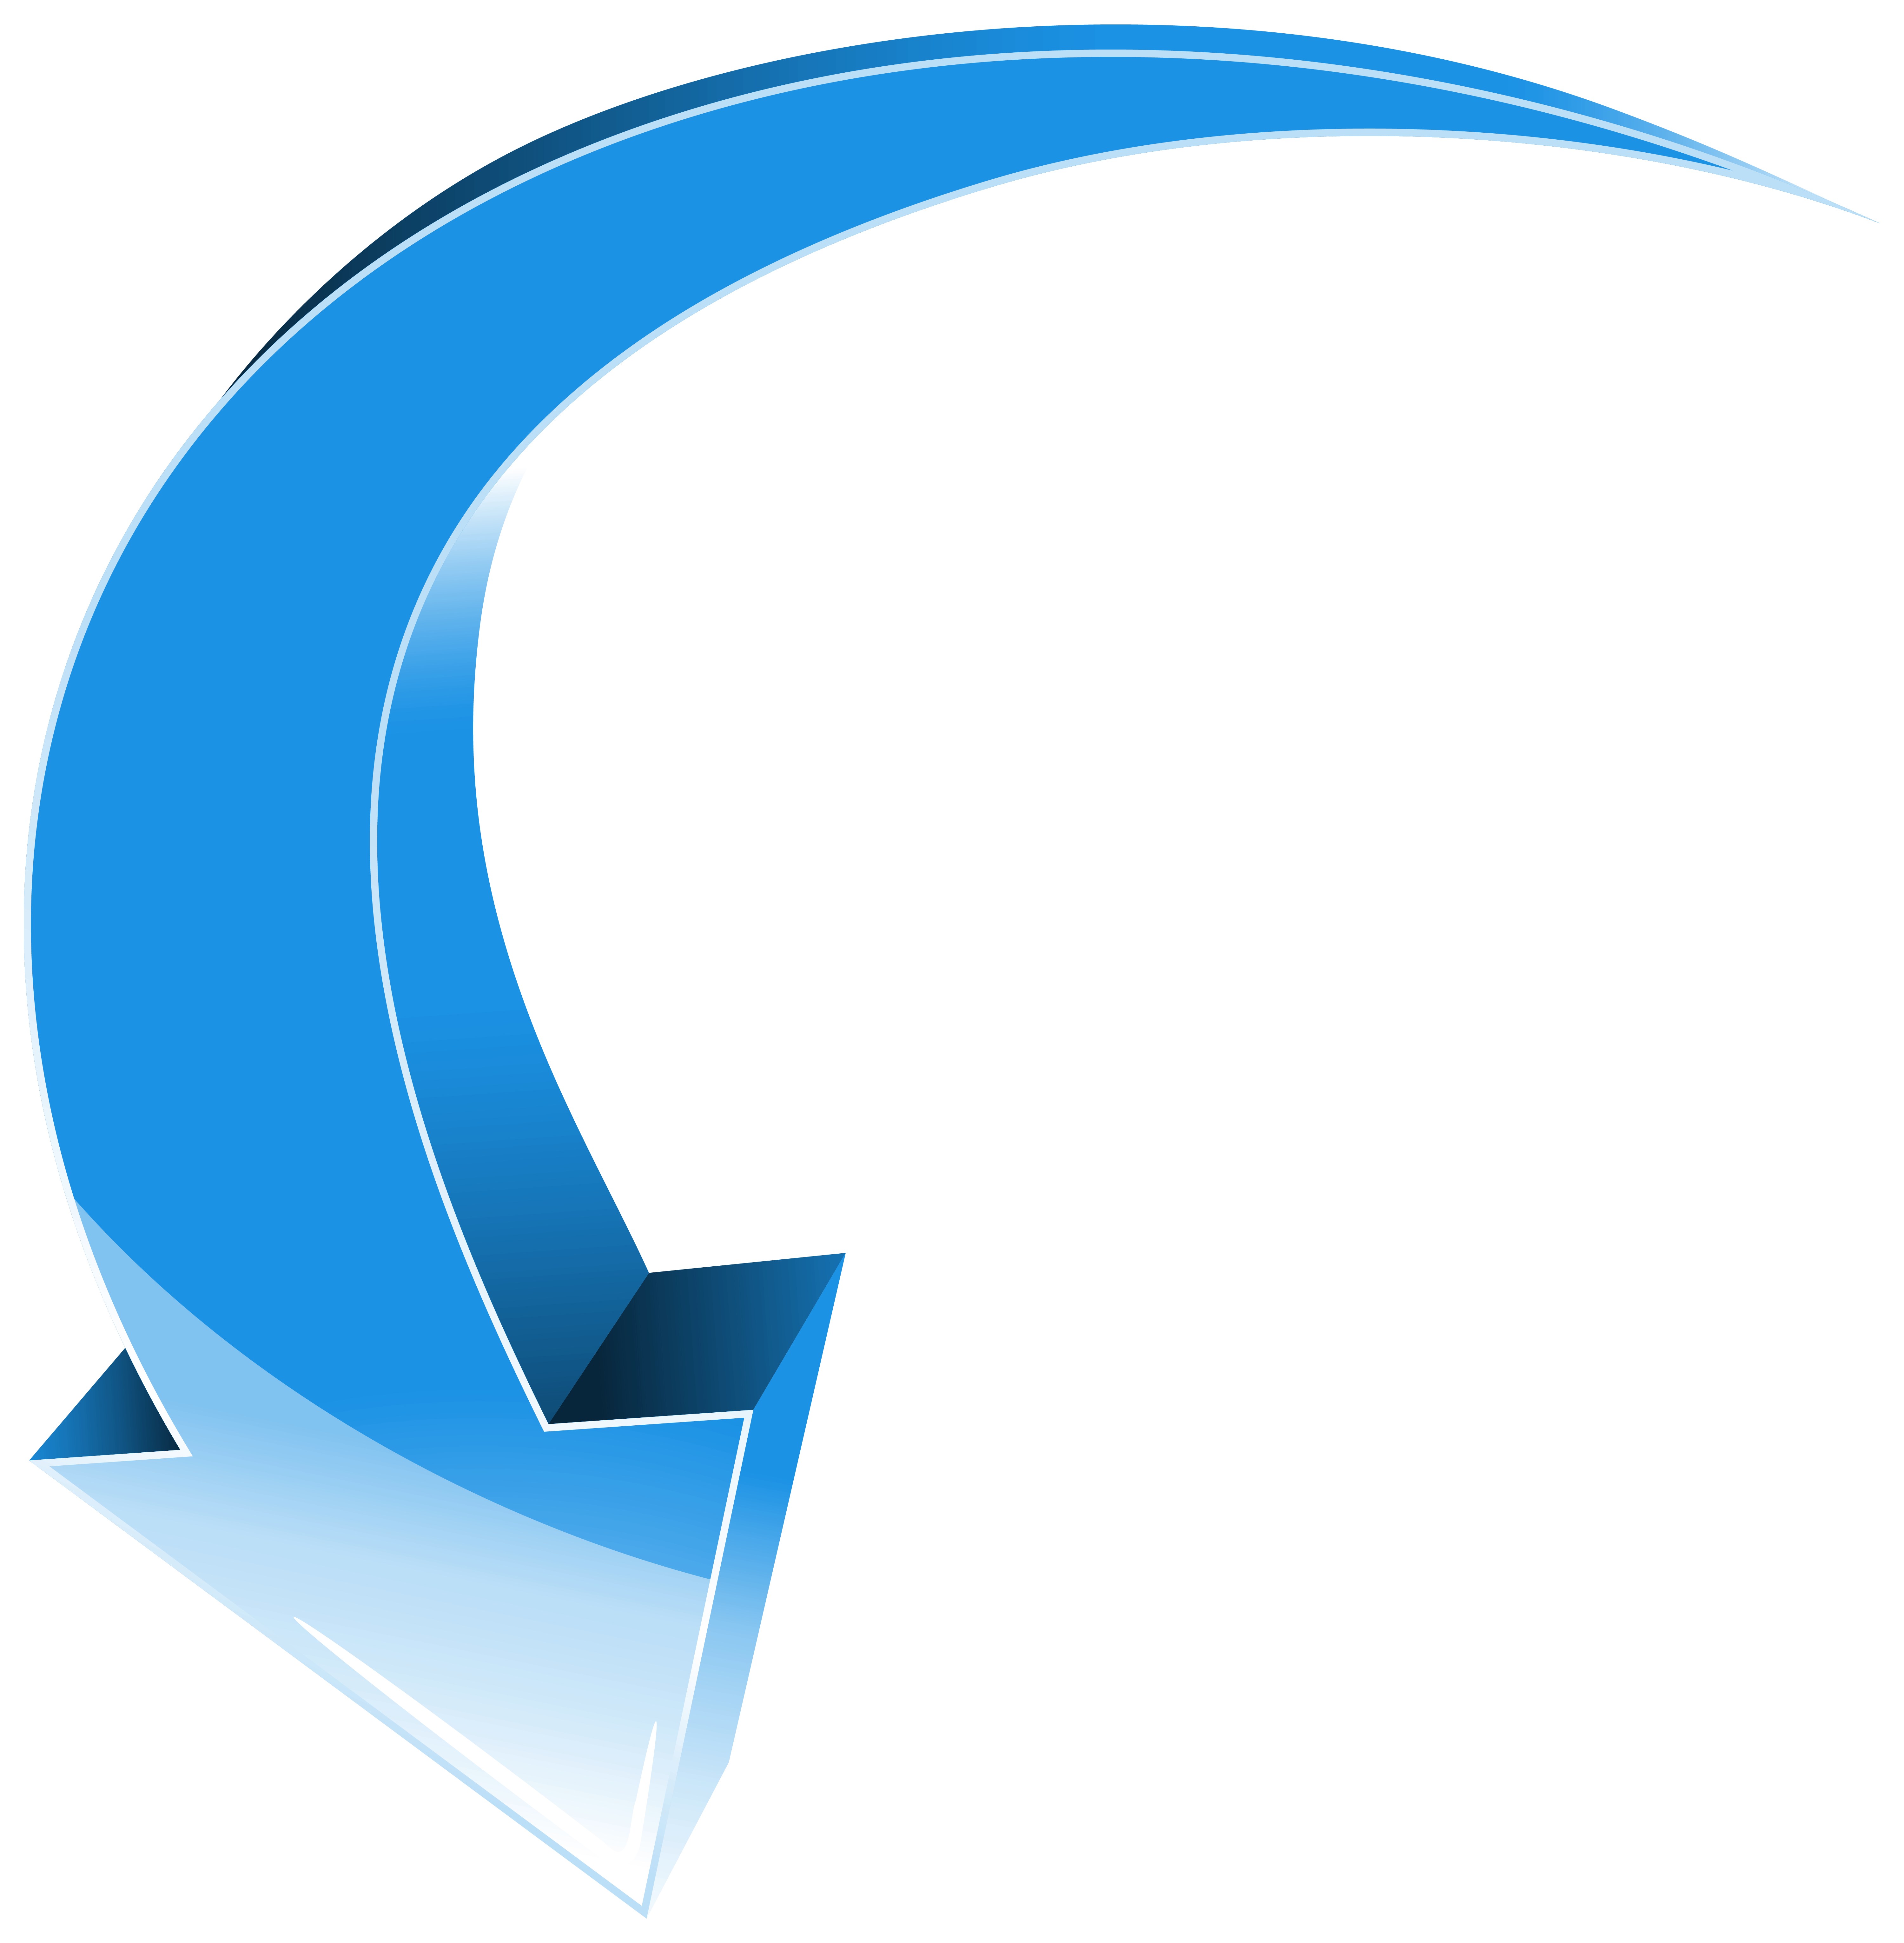 Arrow Blue Down Transparent PNG Clip Art Image vector library